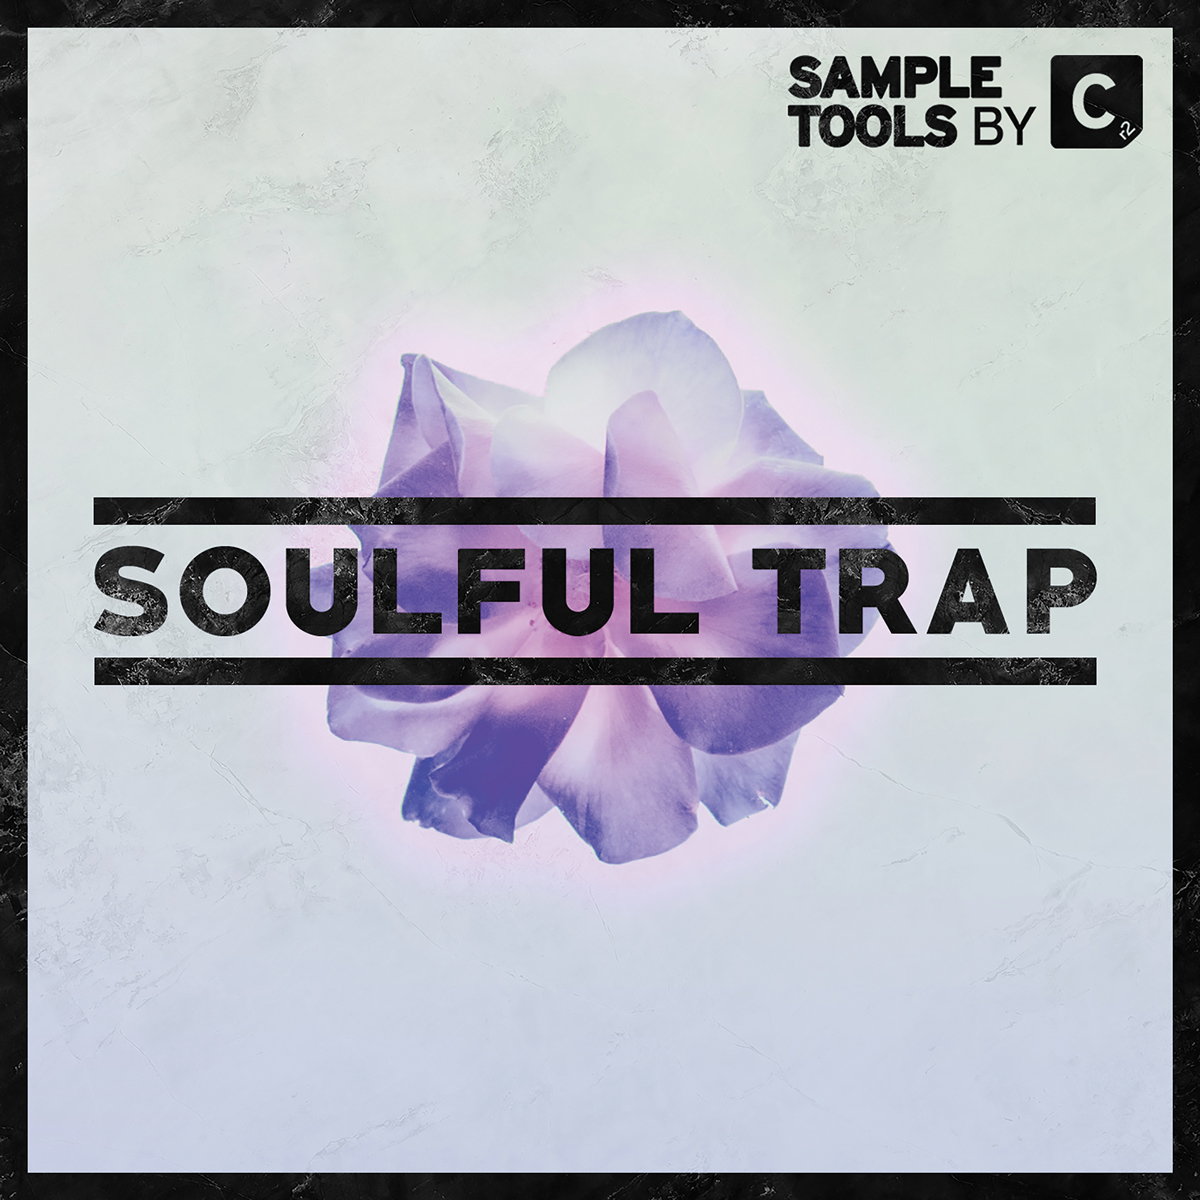 SAMPLE TOOLS BY CR2から『SOULFUL TRAP』がリリースされた